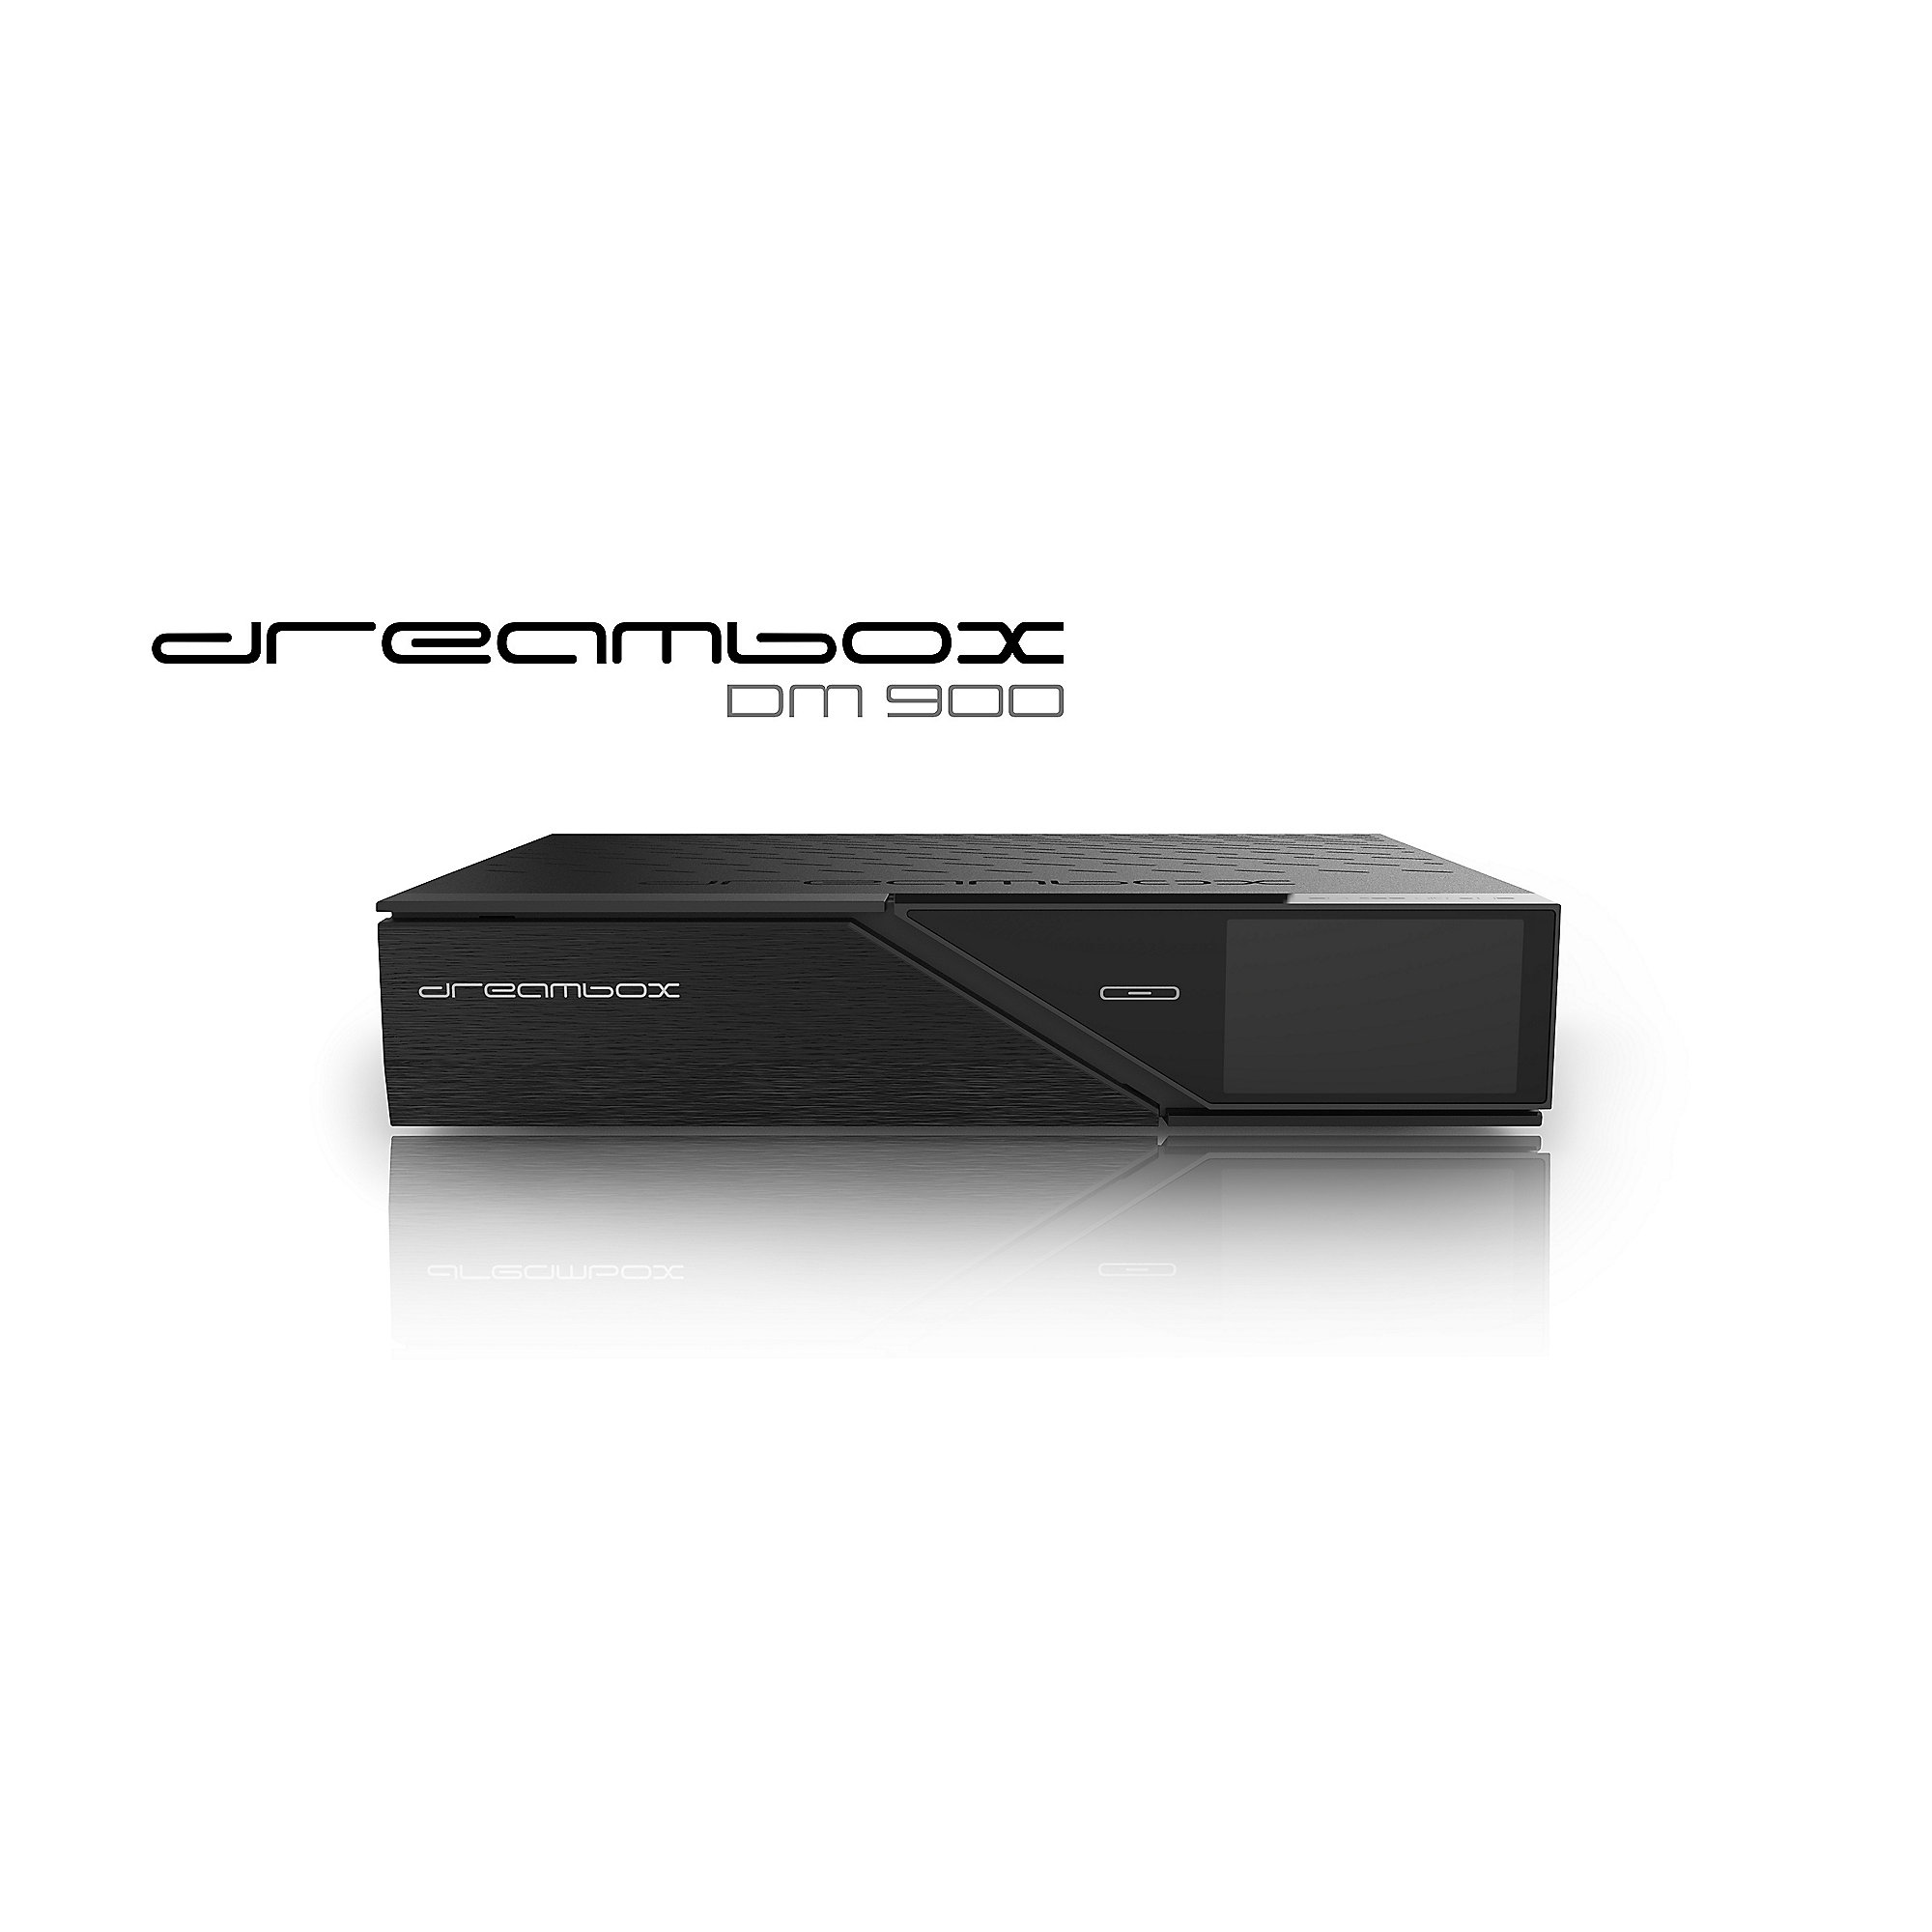 Dreambox DM900 4K UHD DVB-C/T2HD-Receiver 1TB PVR, Linux HDMI USB3.0